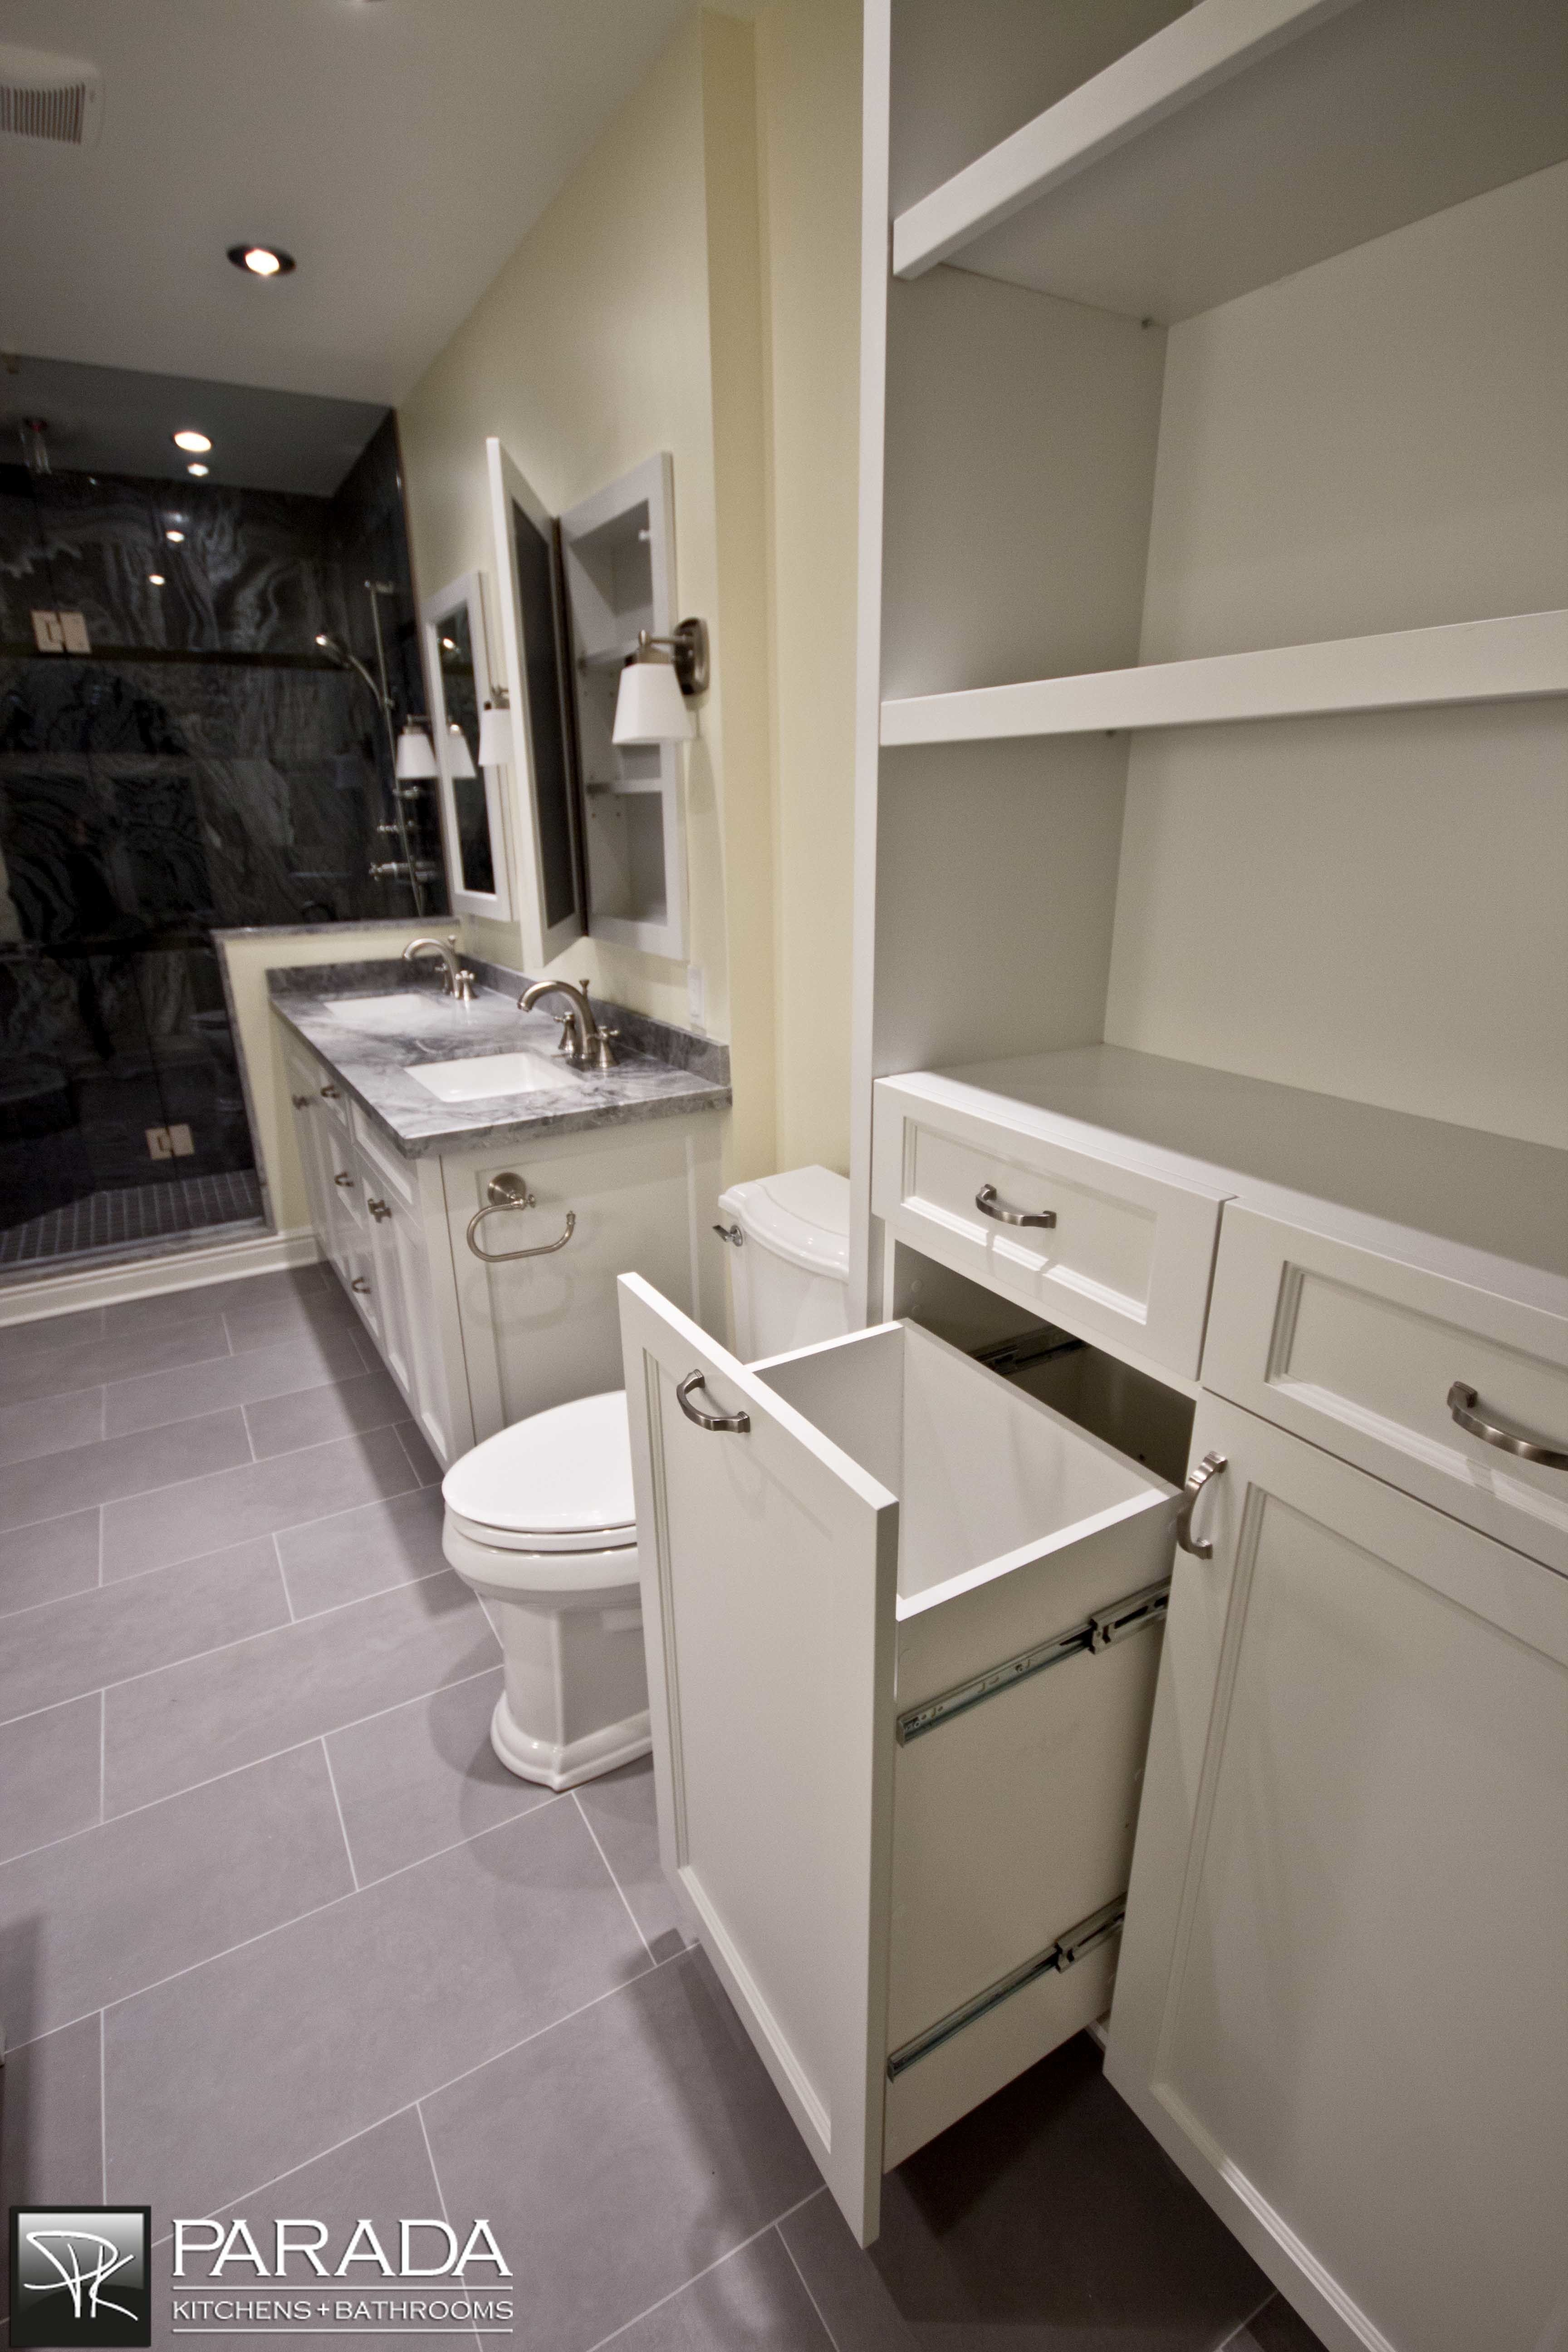 Bathroom cabinet with built in laundry hamper - Find This Pin And More On Master Bath Reno Built In Laundry Hamper